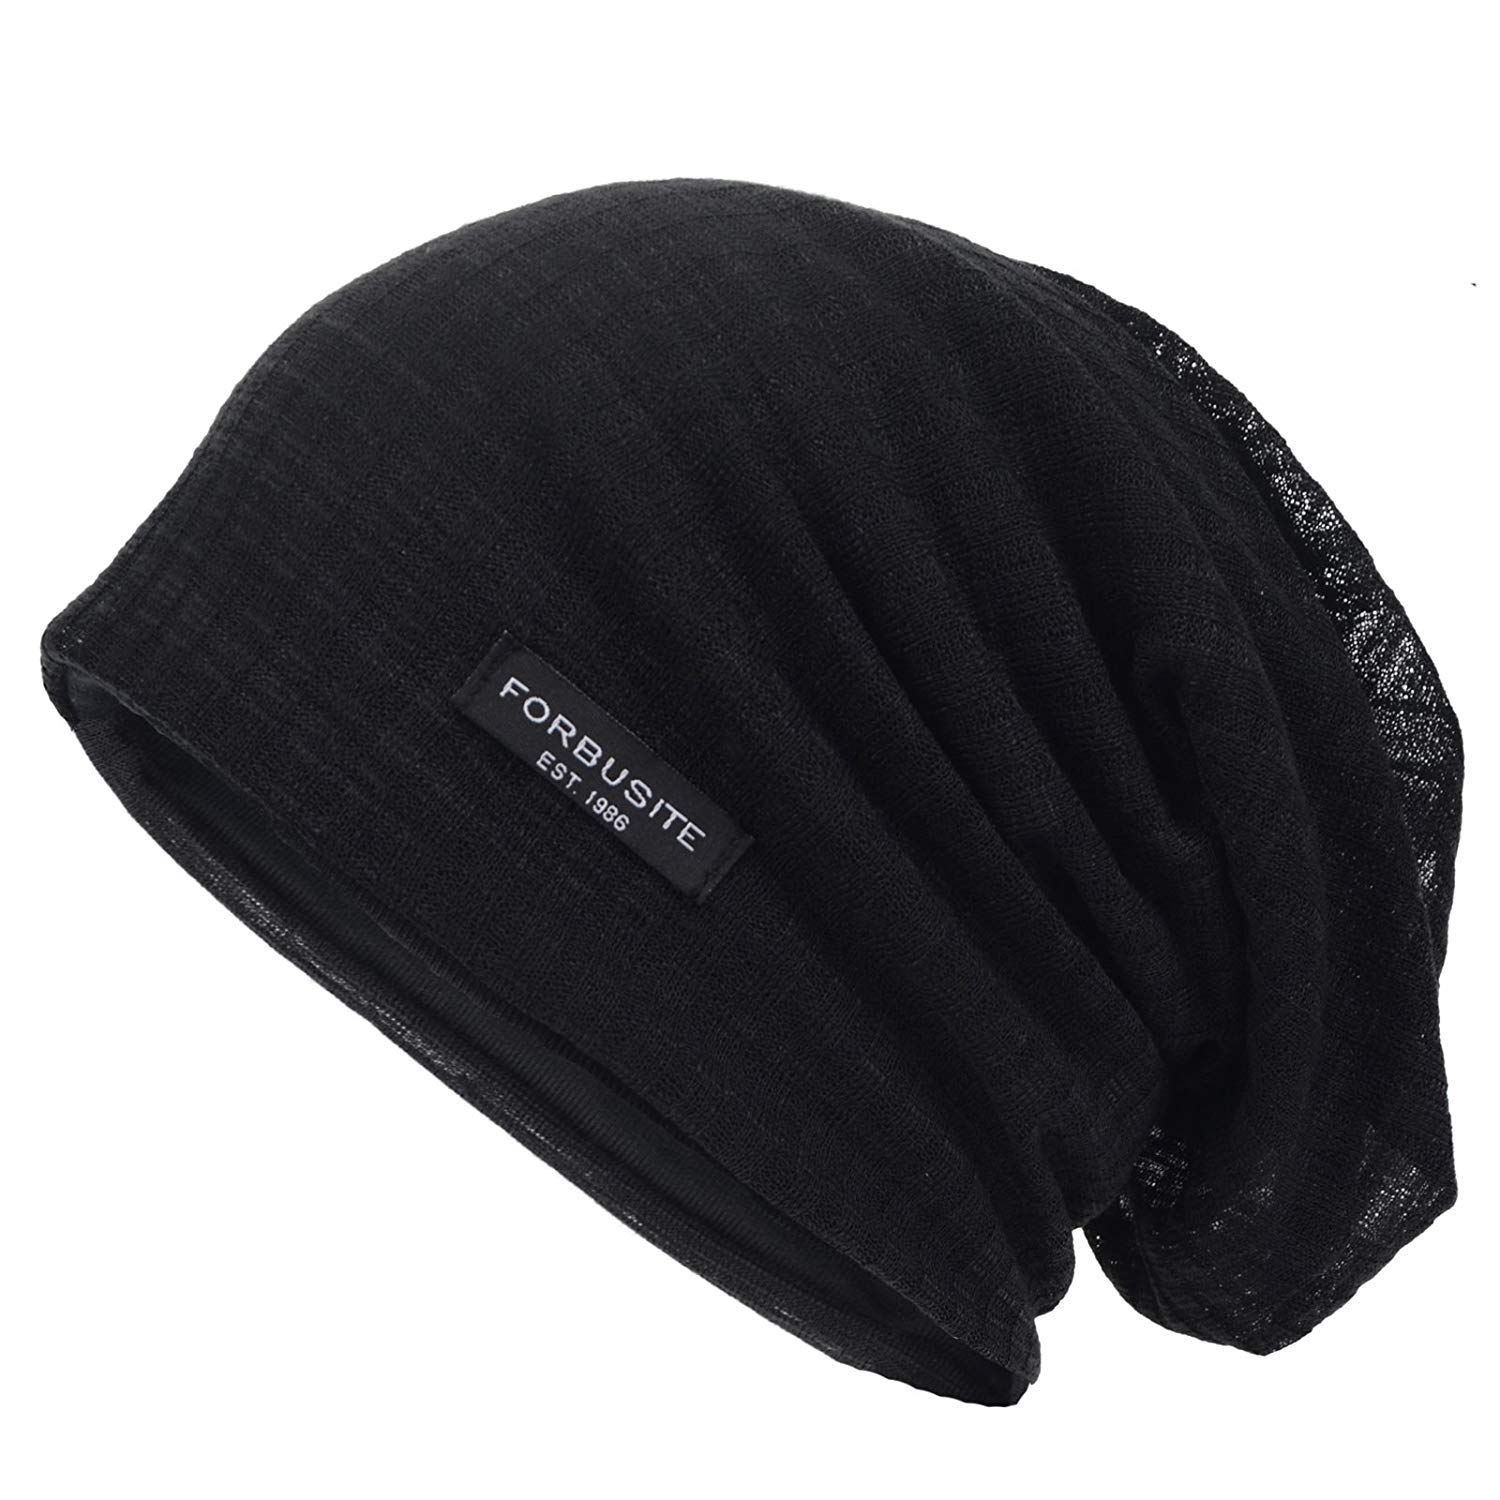 3010a74d301 Get Quotations · Wimdream Slouch Mens Beanie Hats Stripe Summer Winter Caps  B018h (Black)